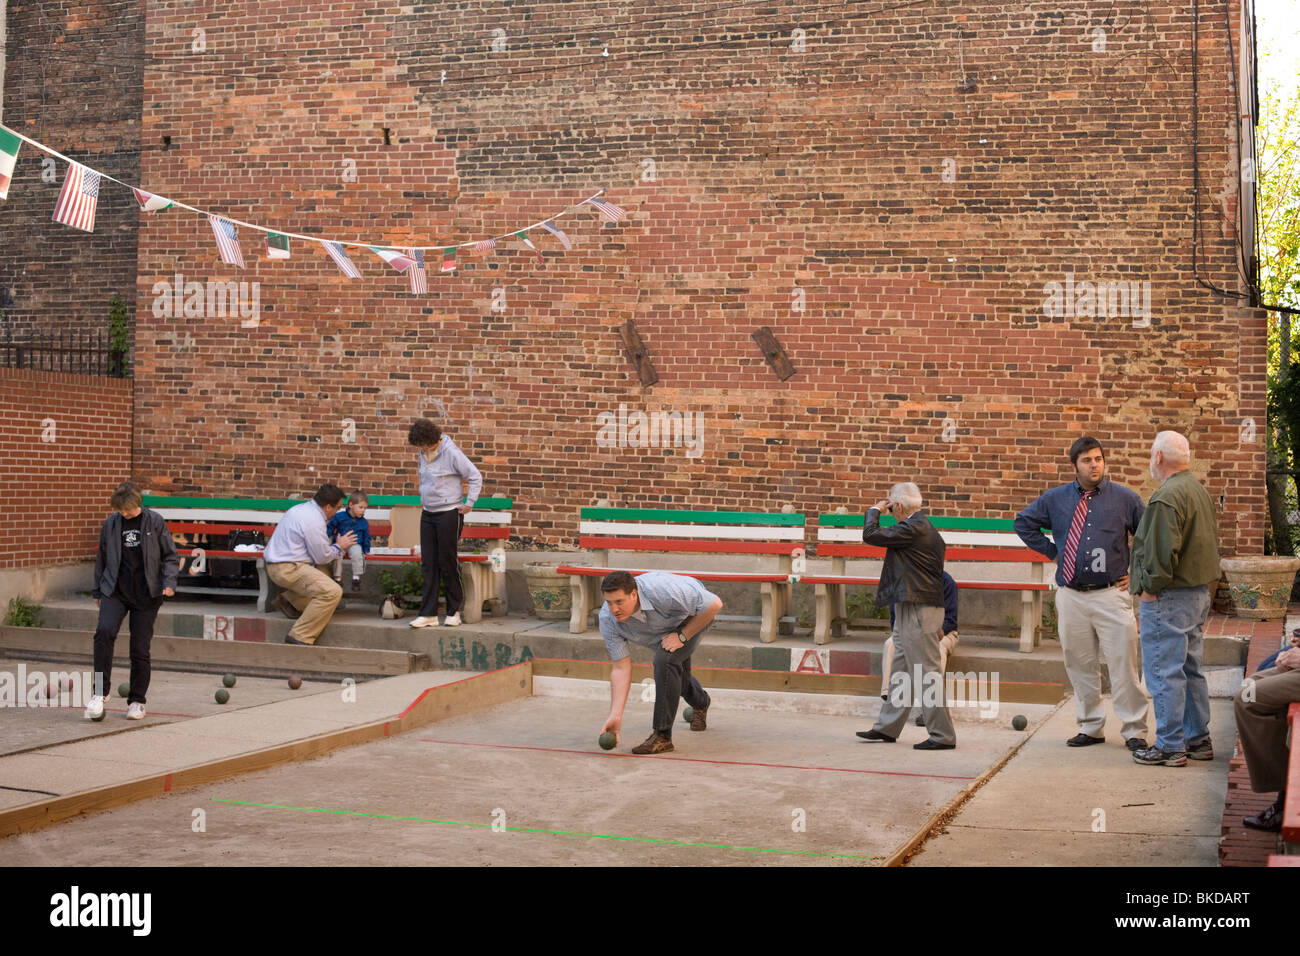 Playing bocce ball in Little Italy, Baltimore, Maryland - Stock Image